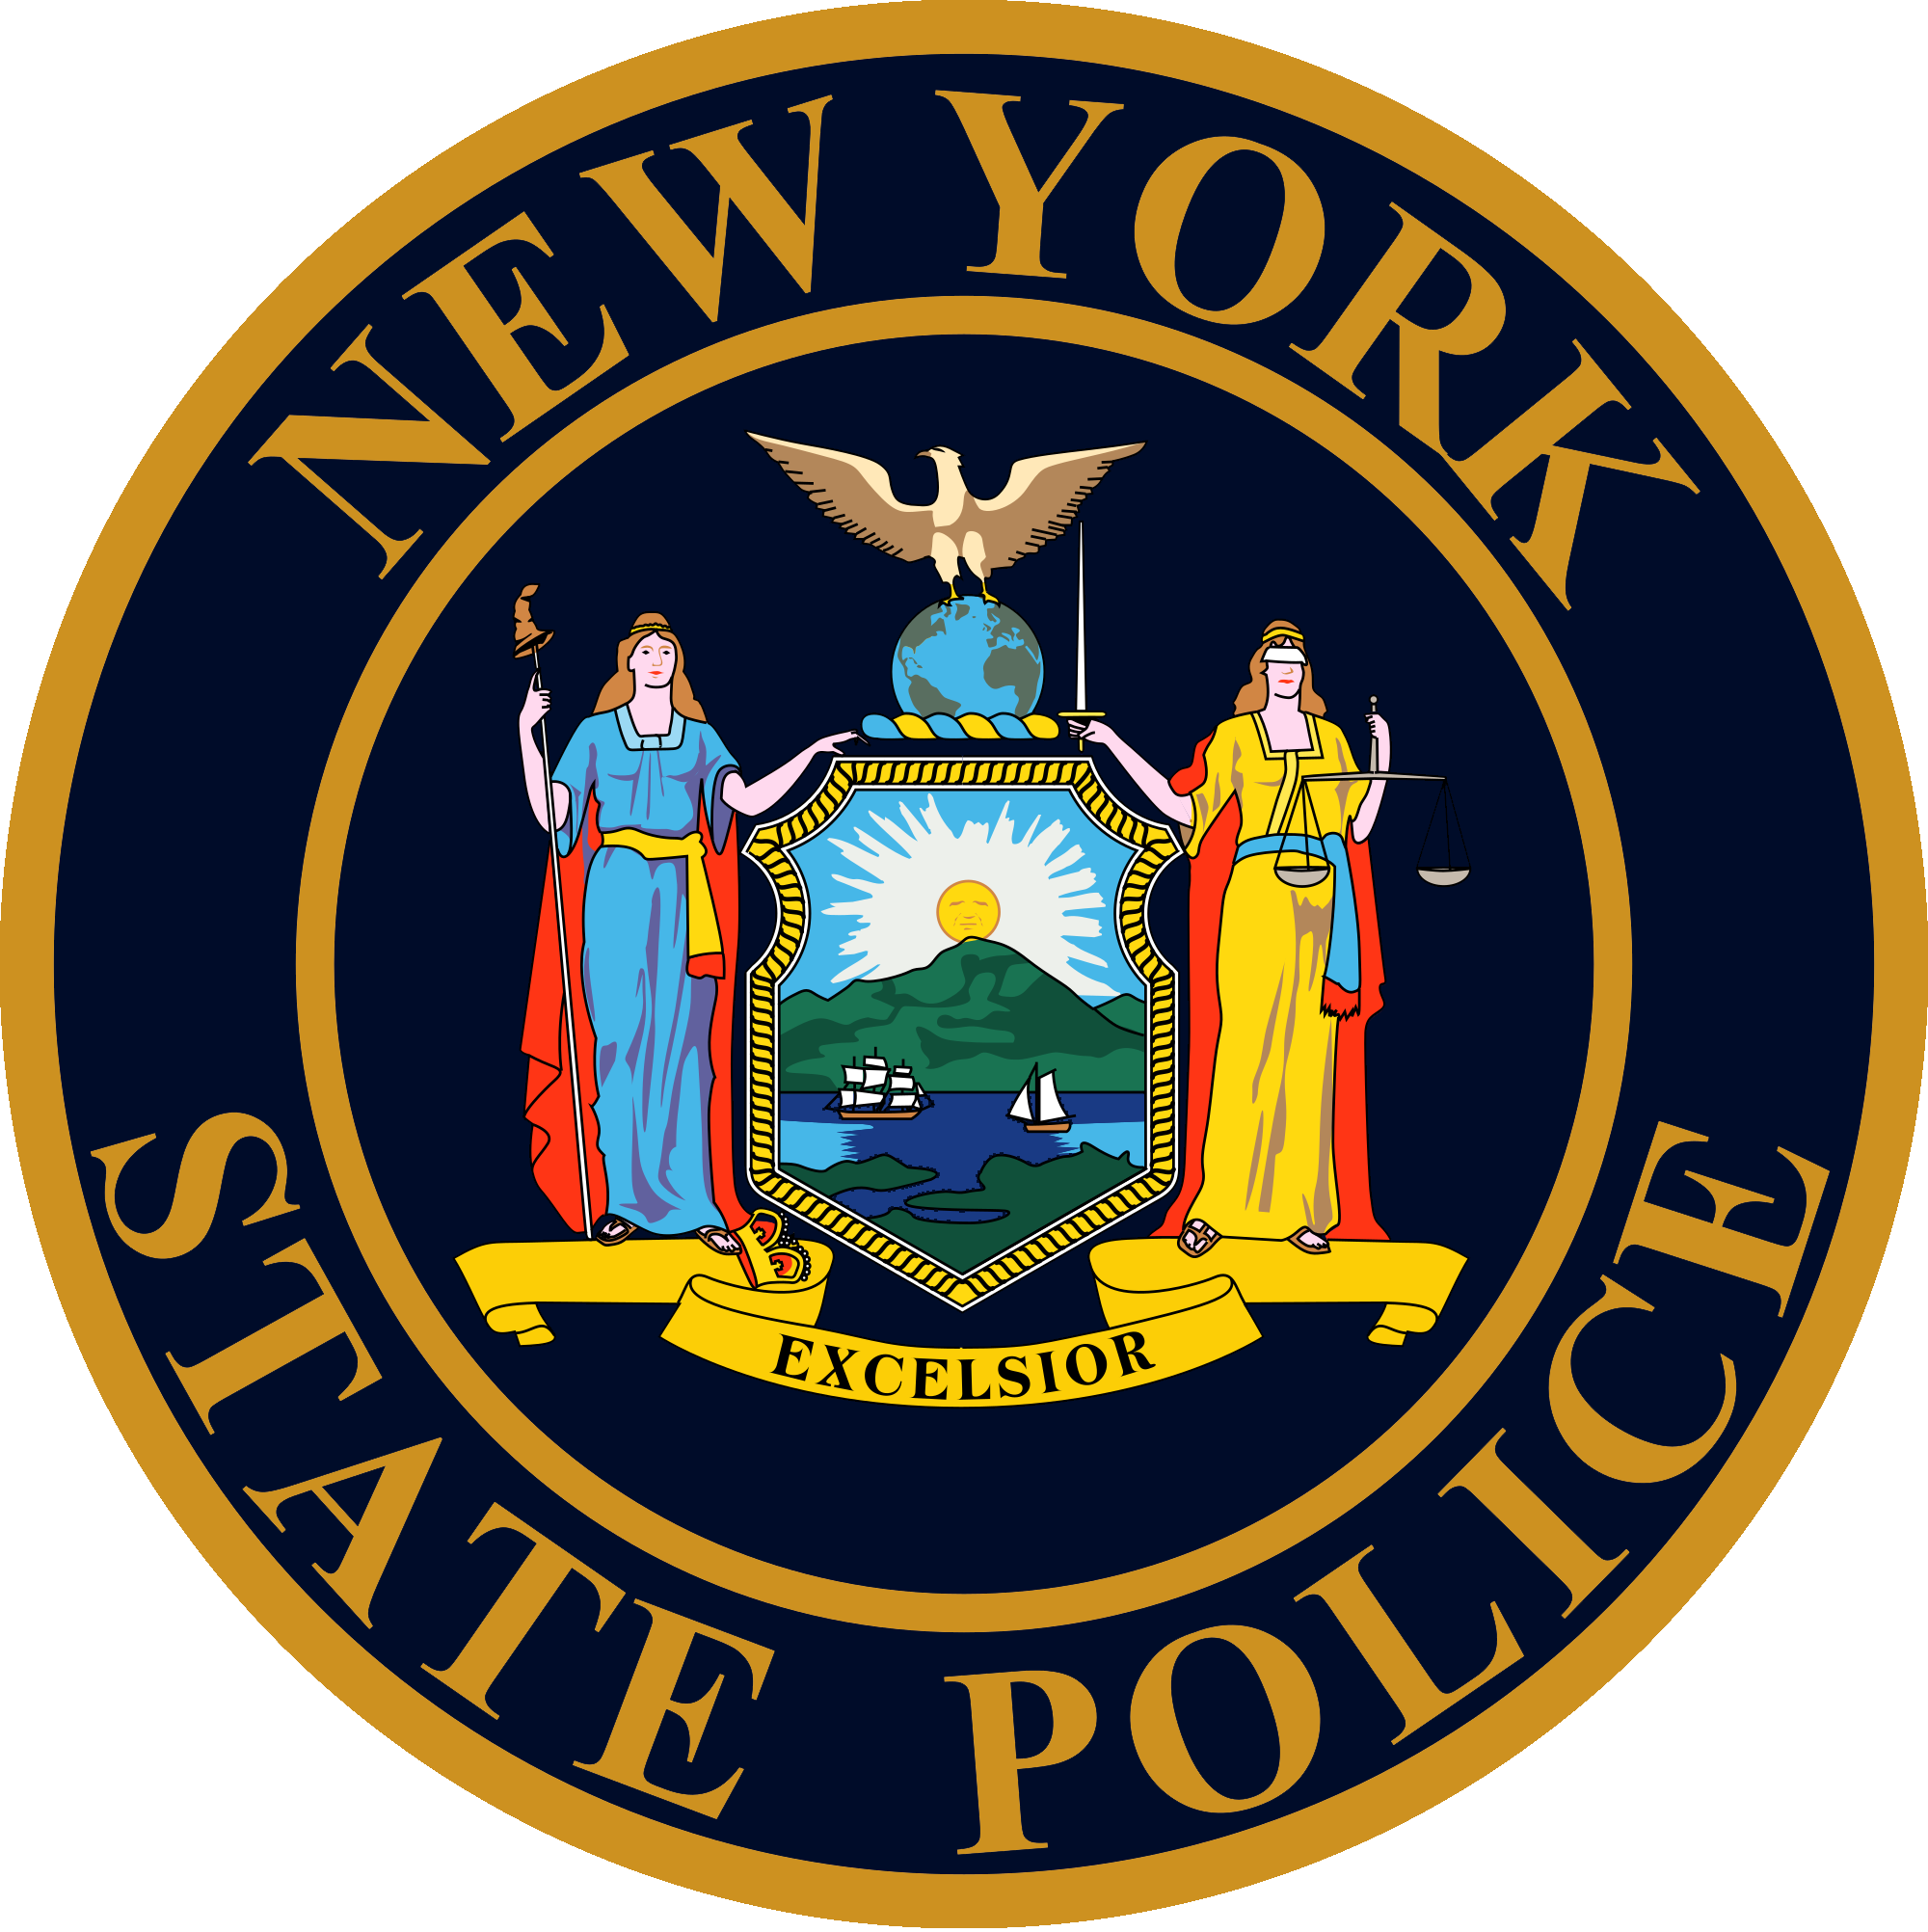 Gta 5 cop cars png. New york state police